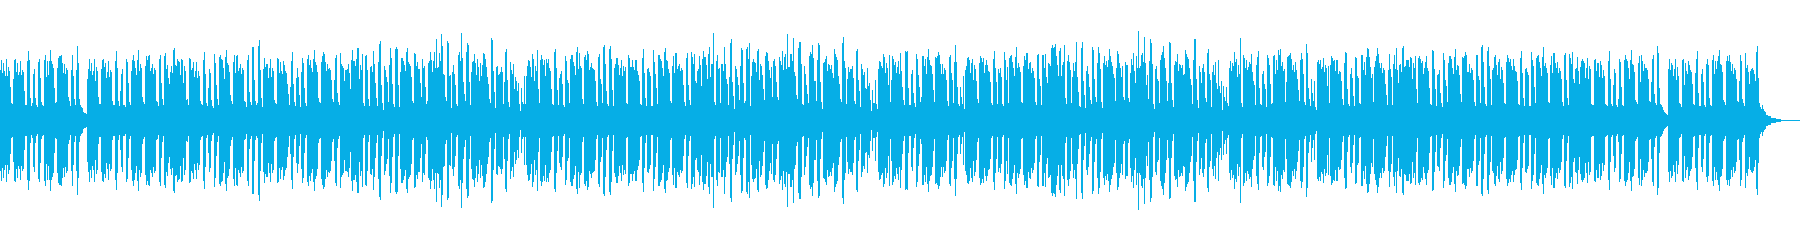 For commercials, videos, sinking time, etc.'s reproduced waveform